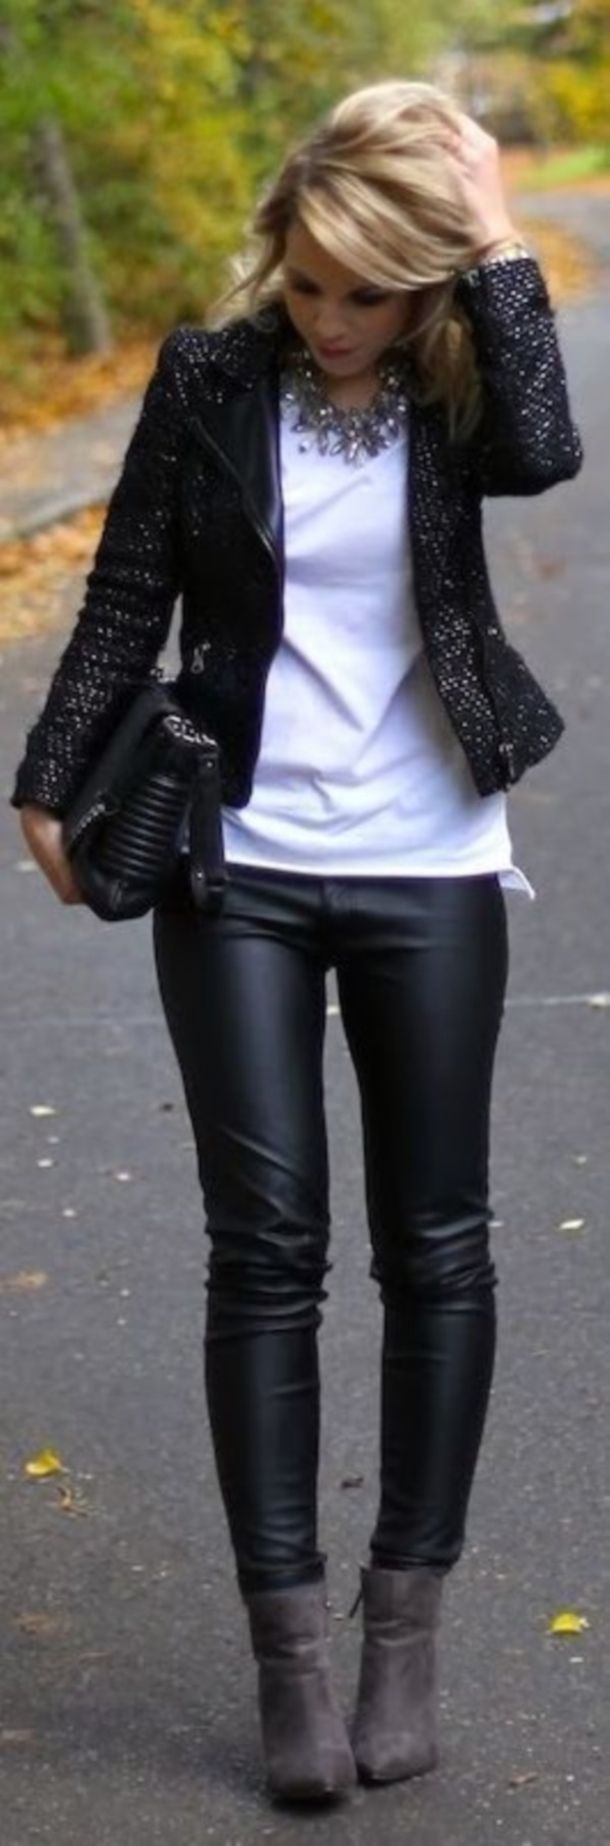 40 Edgy and Chic Outfits For Women fashion style stylish girl fashion womens fashion fashion outfits